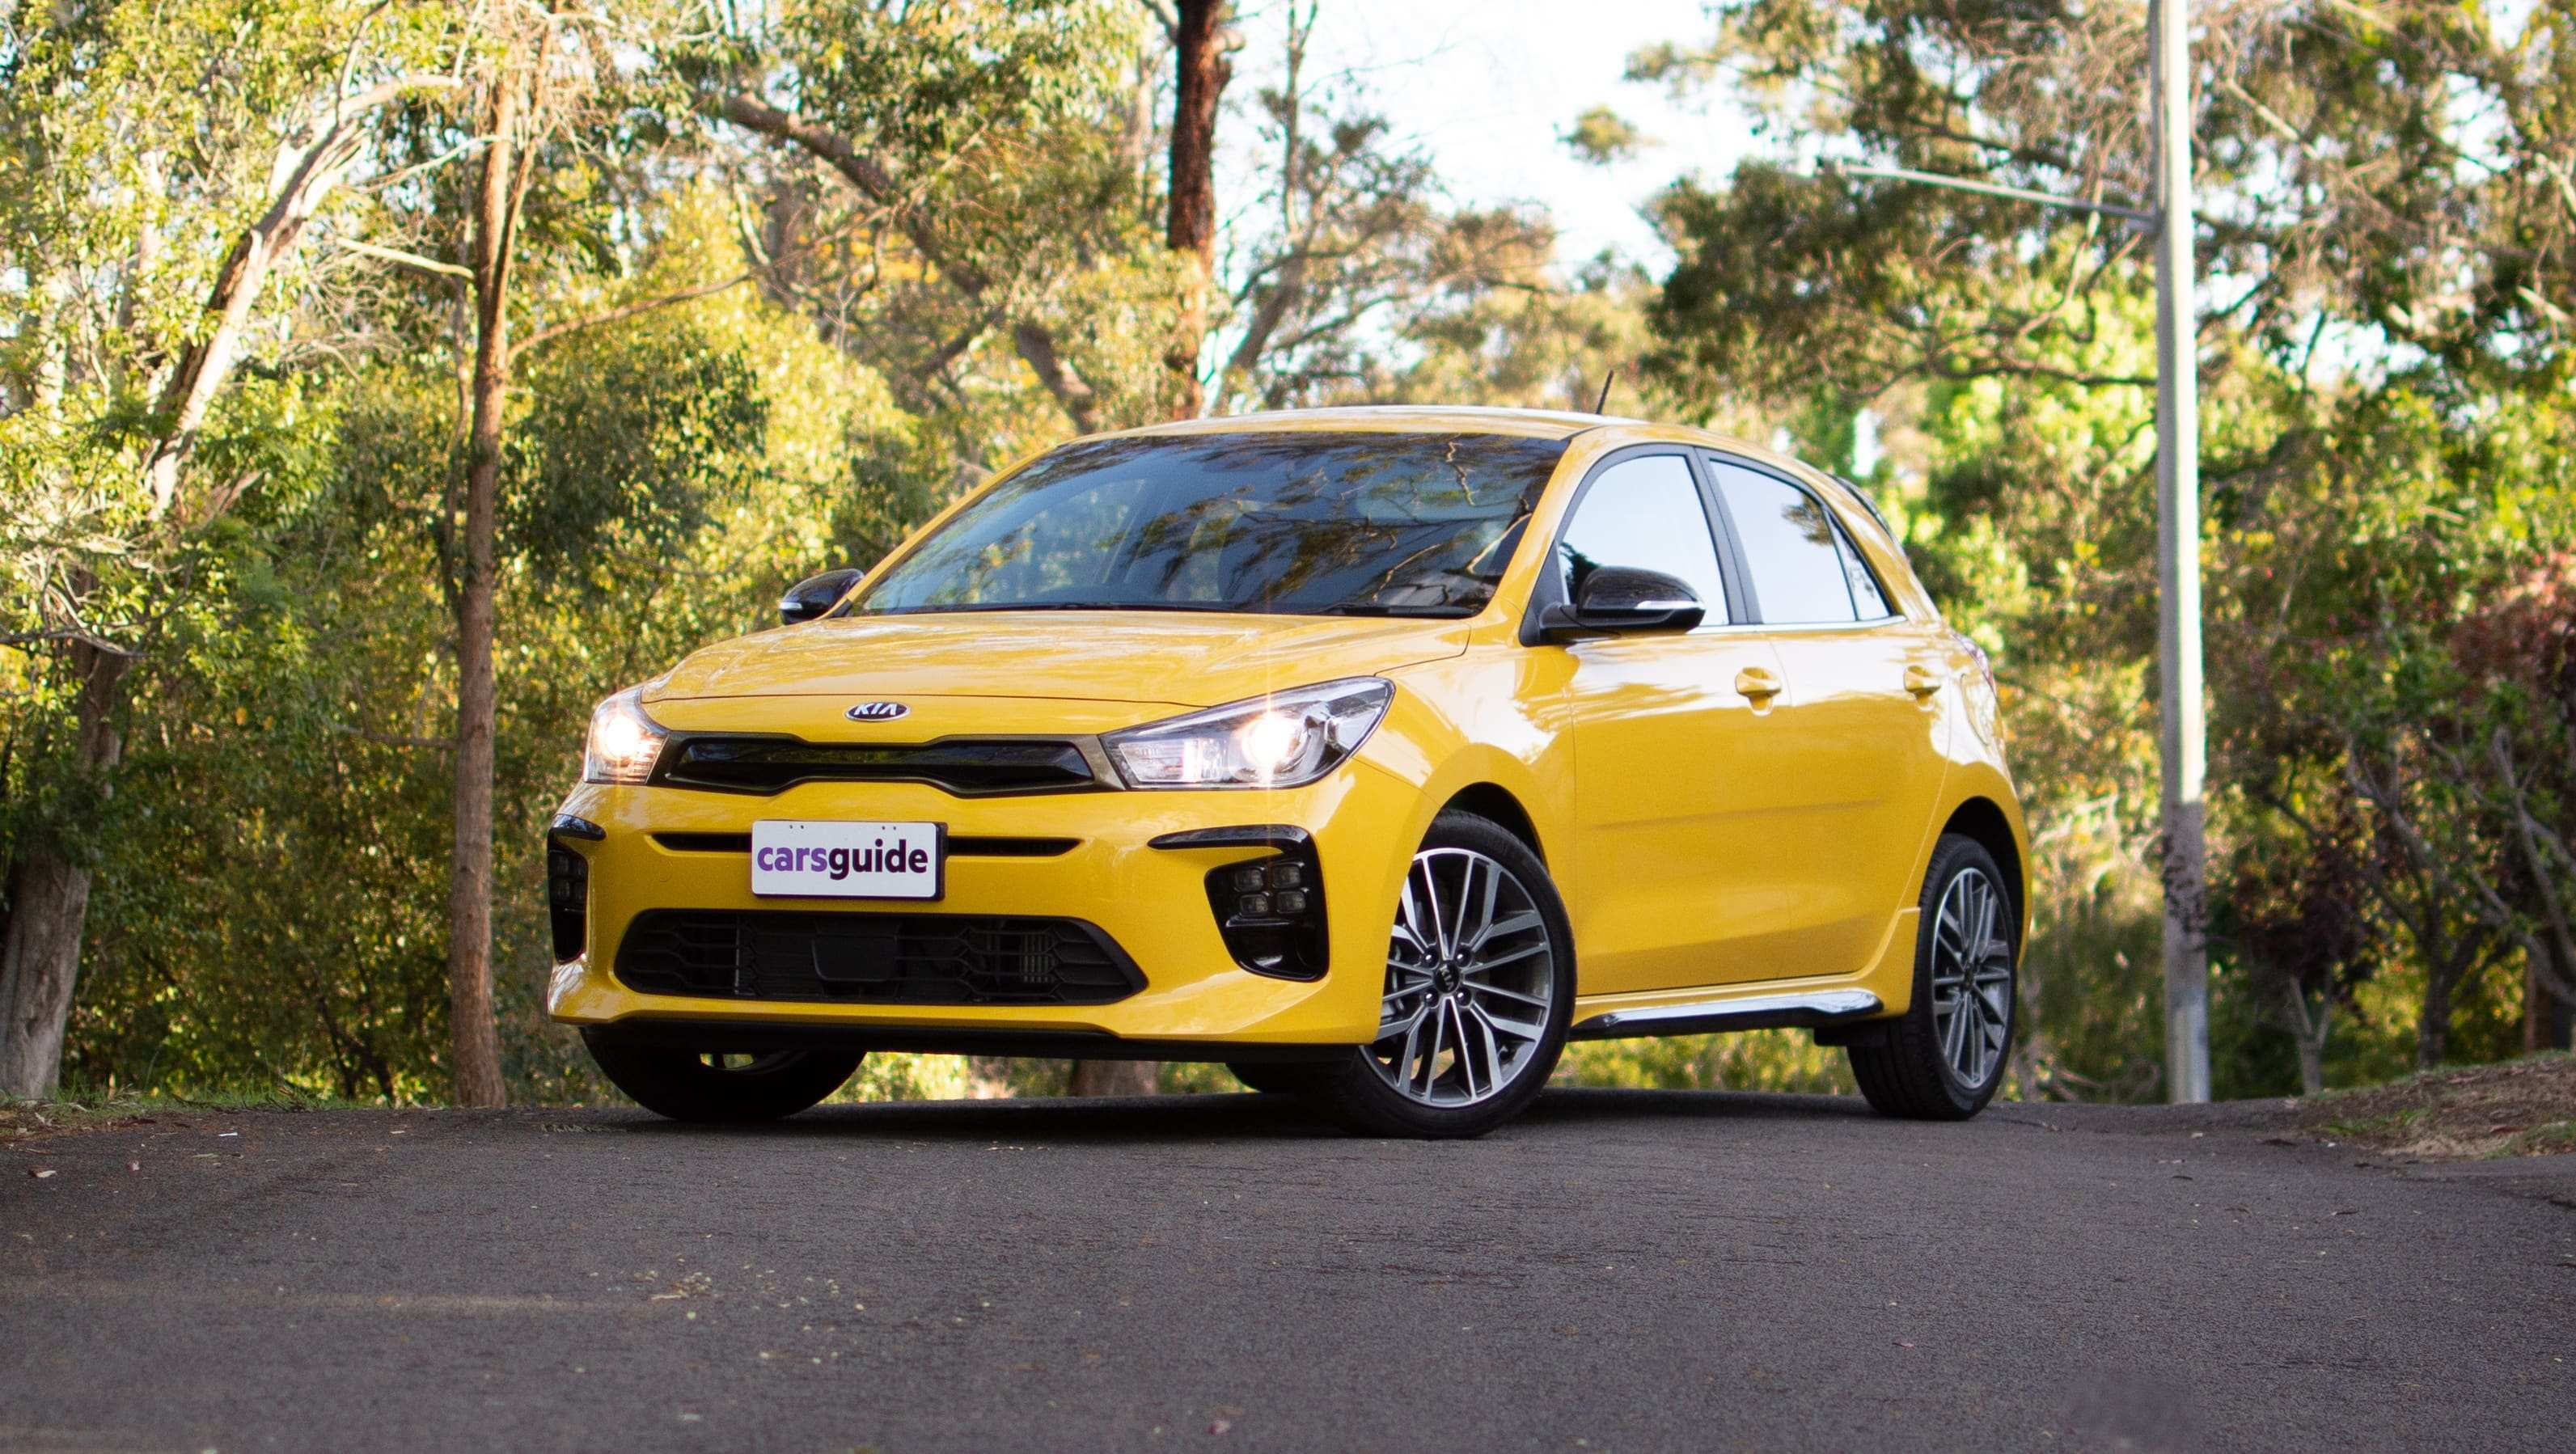 12 Concept of Kia Rio 2019 Review Specs and Review by Kia Rio 2019 Review